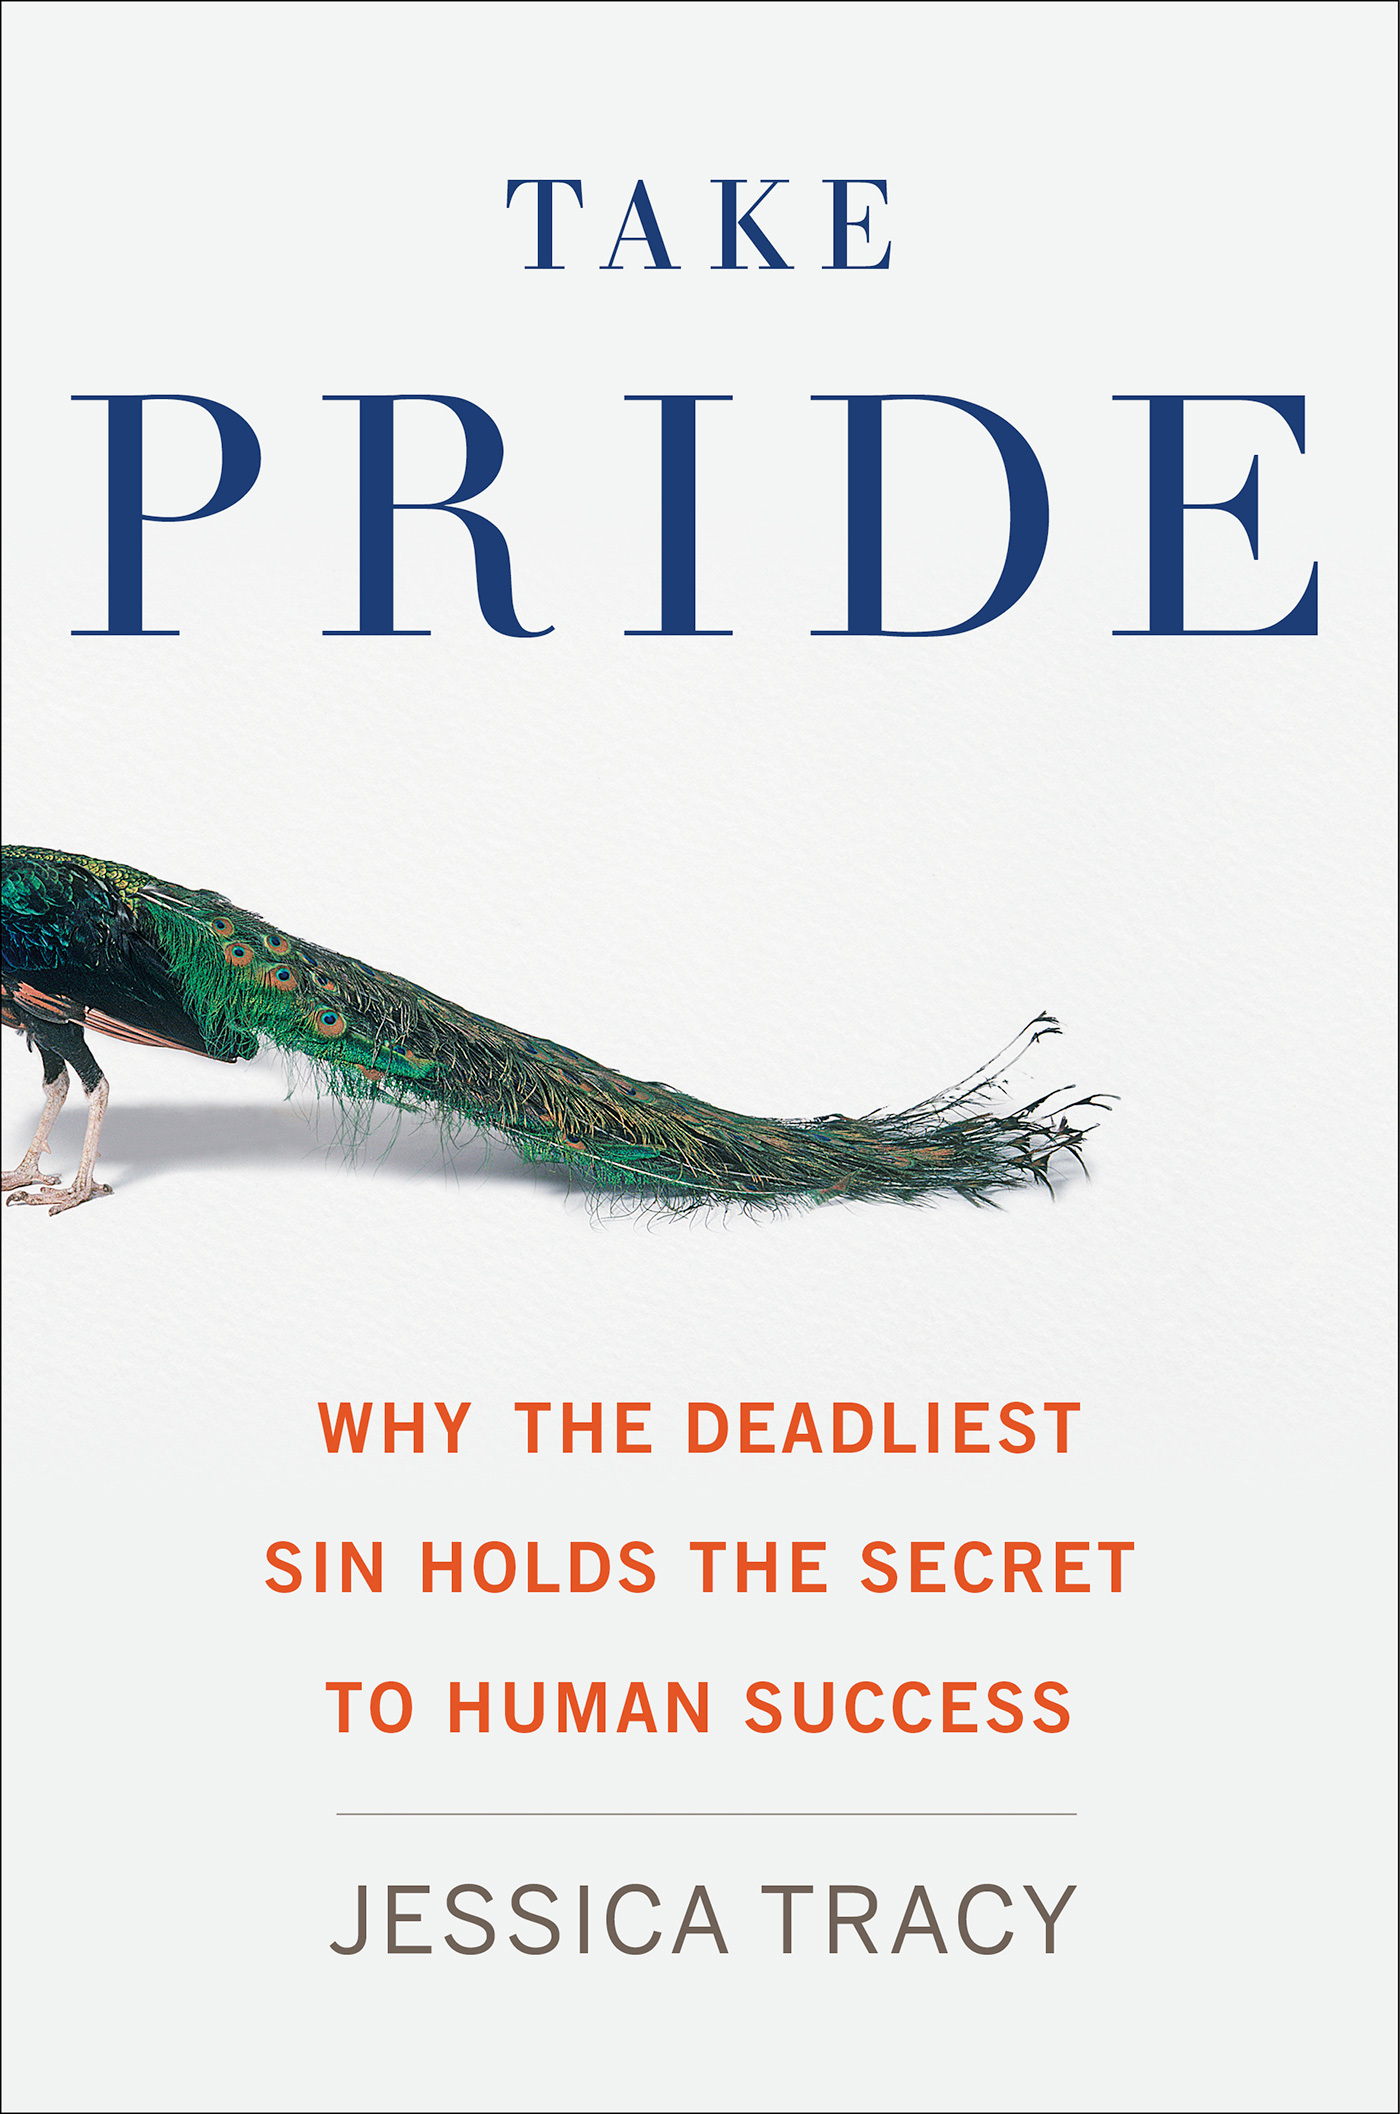 Take-Pride-Why-the-Deadliest-Sin-Holds-the-Secret-to-Human-Success